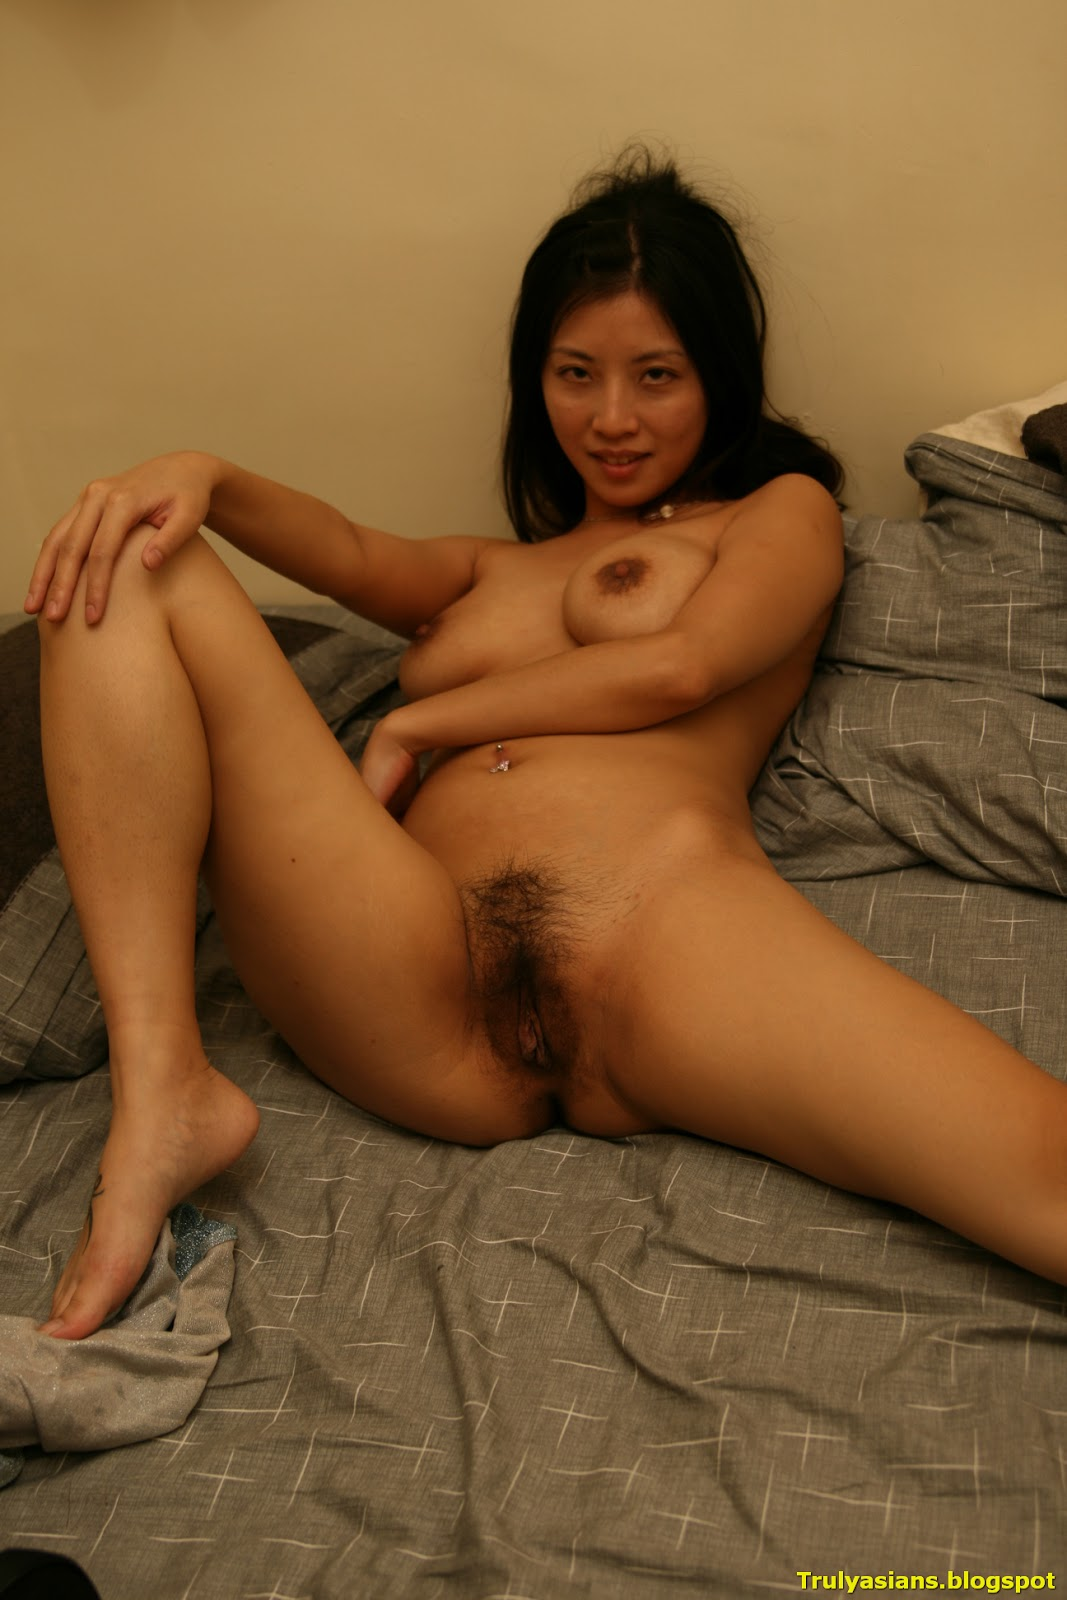 nude women in china